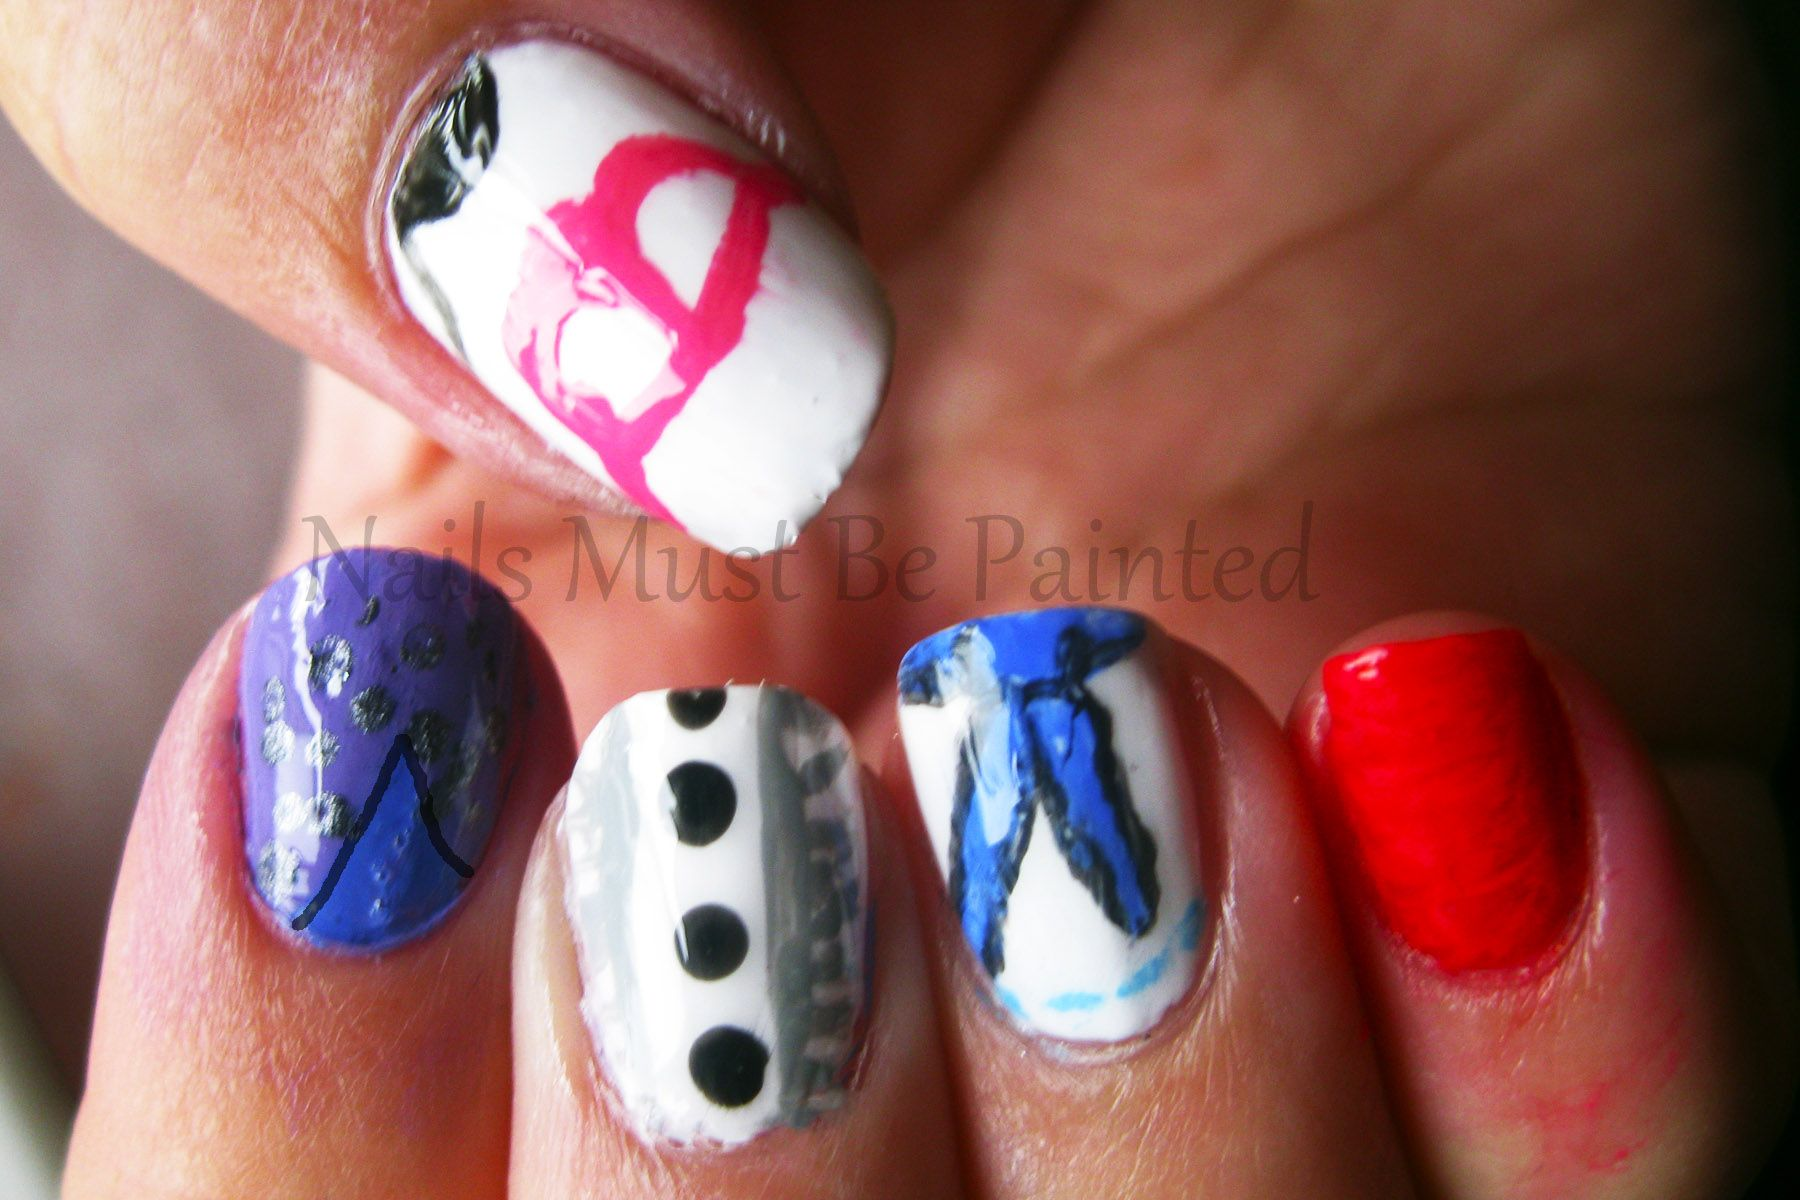 Nail art inspired by the film u dressesu for the llama nail